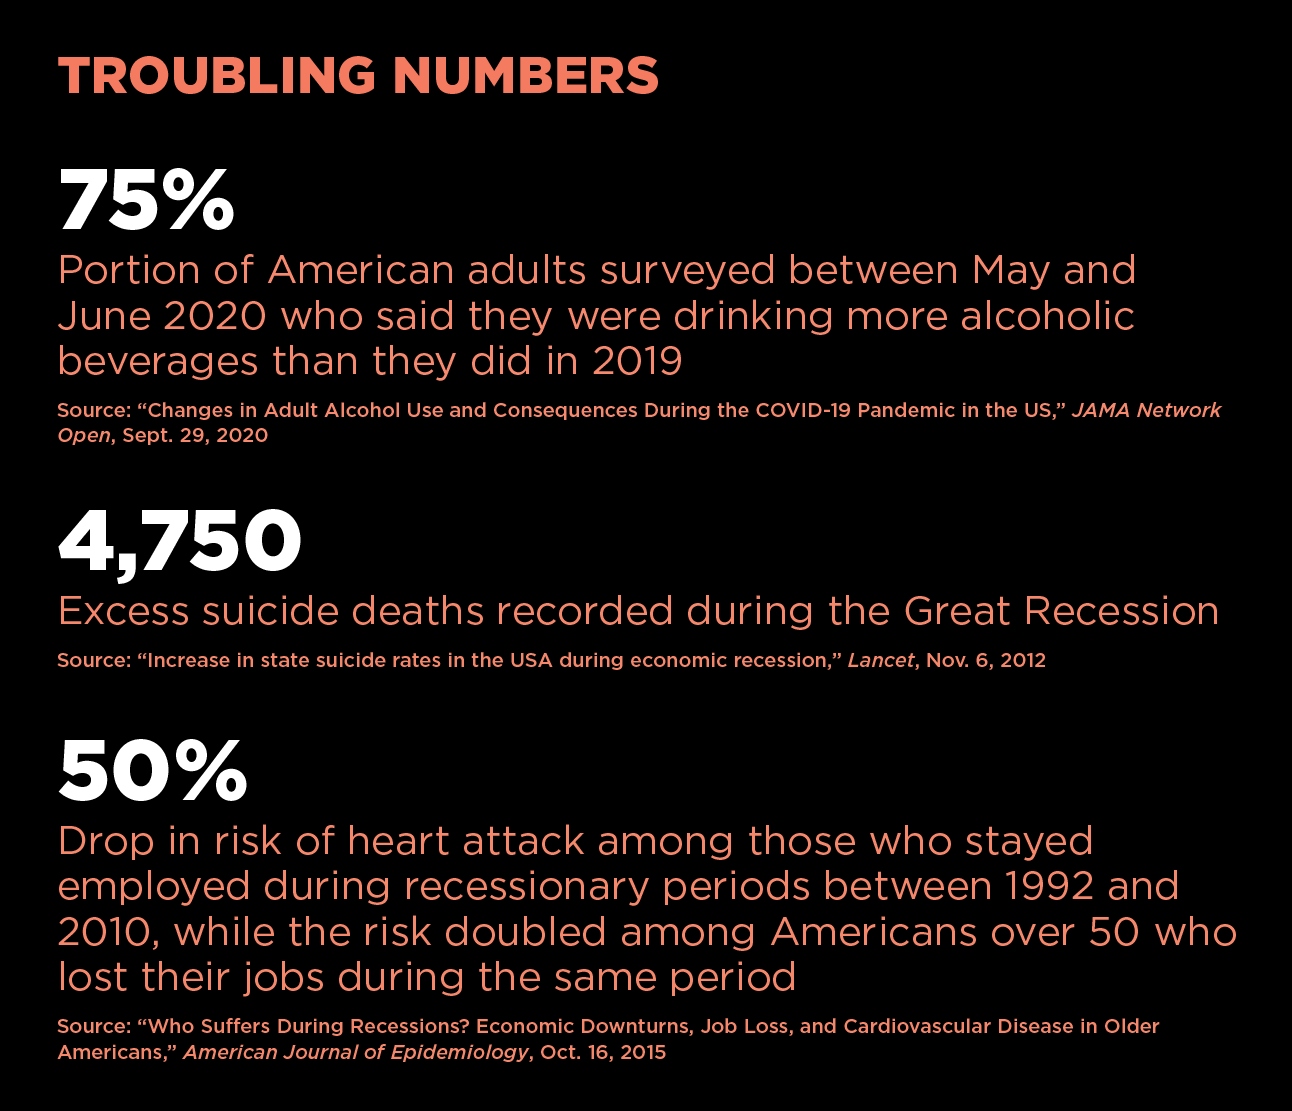 Troubling Numbers: 75 percent of American adults surveyed between May and June 2020 said they were drinking more alcoholic beverages than they did in 2019. In 2012 there were 4,750 excess suicide deaths recorded. For those who stayed employed during the recession, there was a 50% drop in the risk of heart attack.